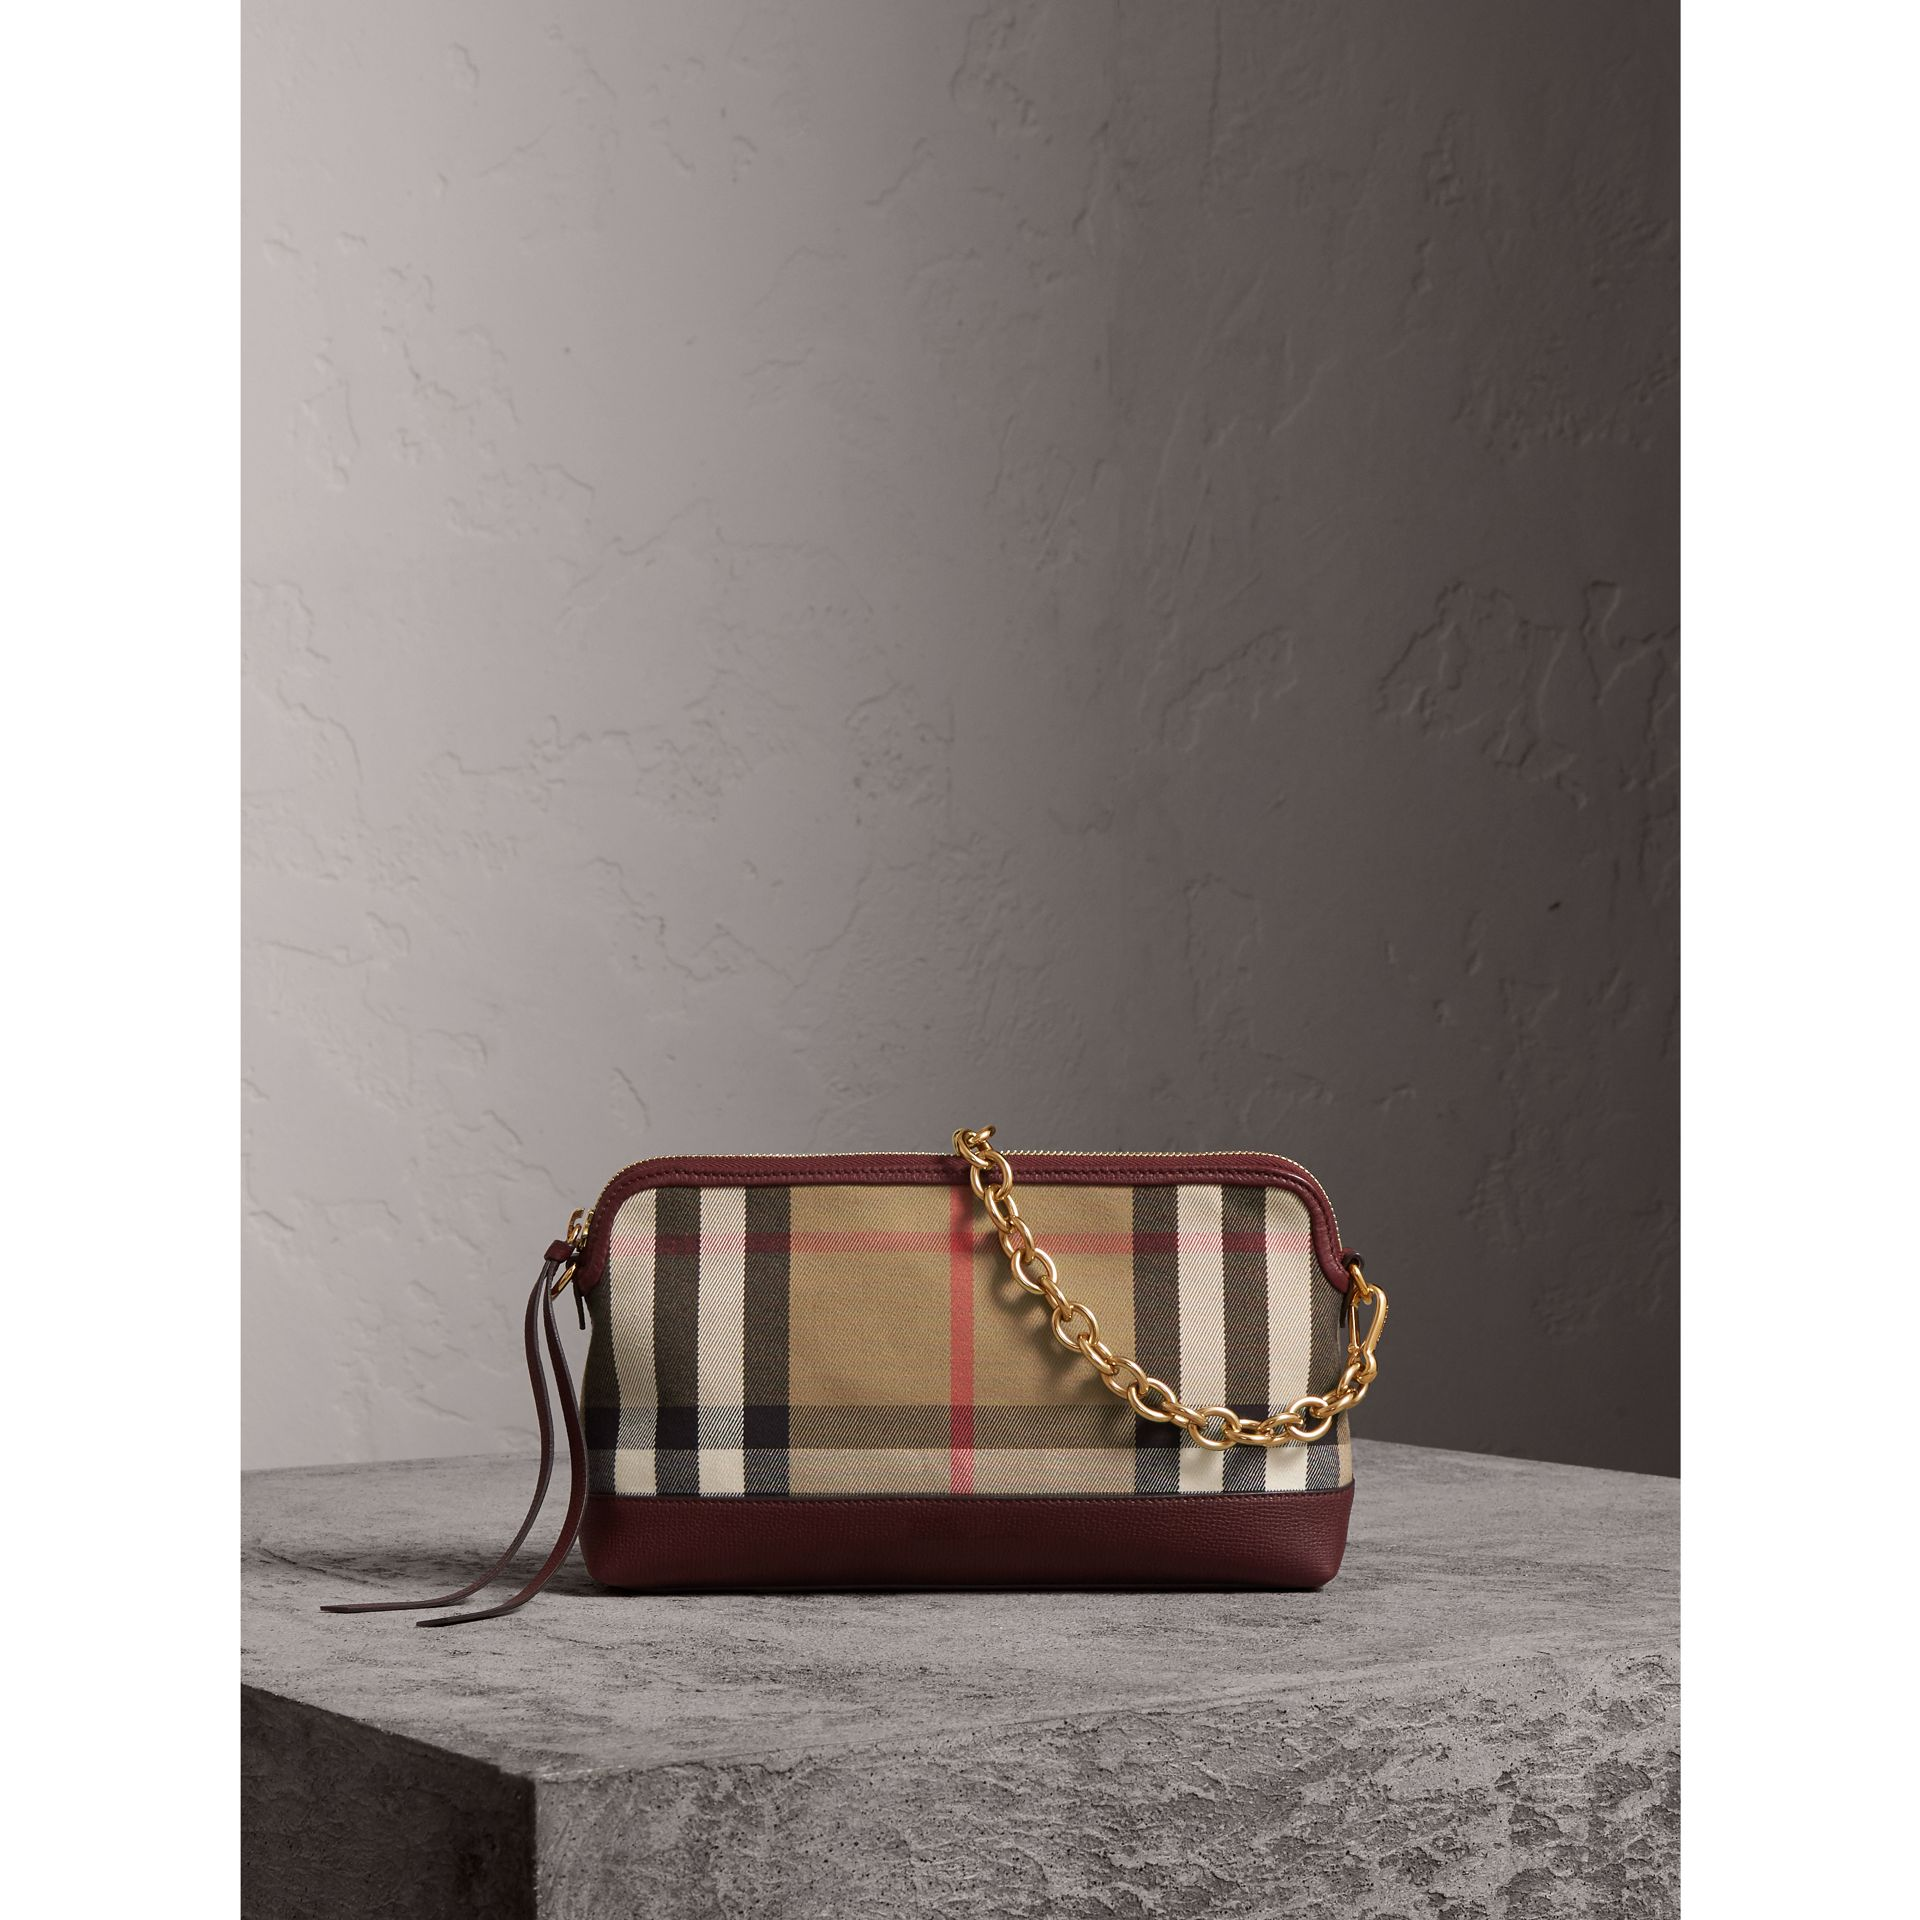 House Check and Leather Clutch Bag in Mahogany Red - Women | Burberry - gallery image 1